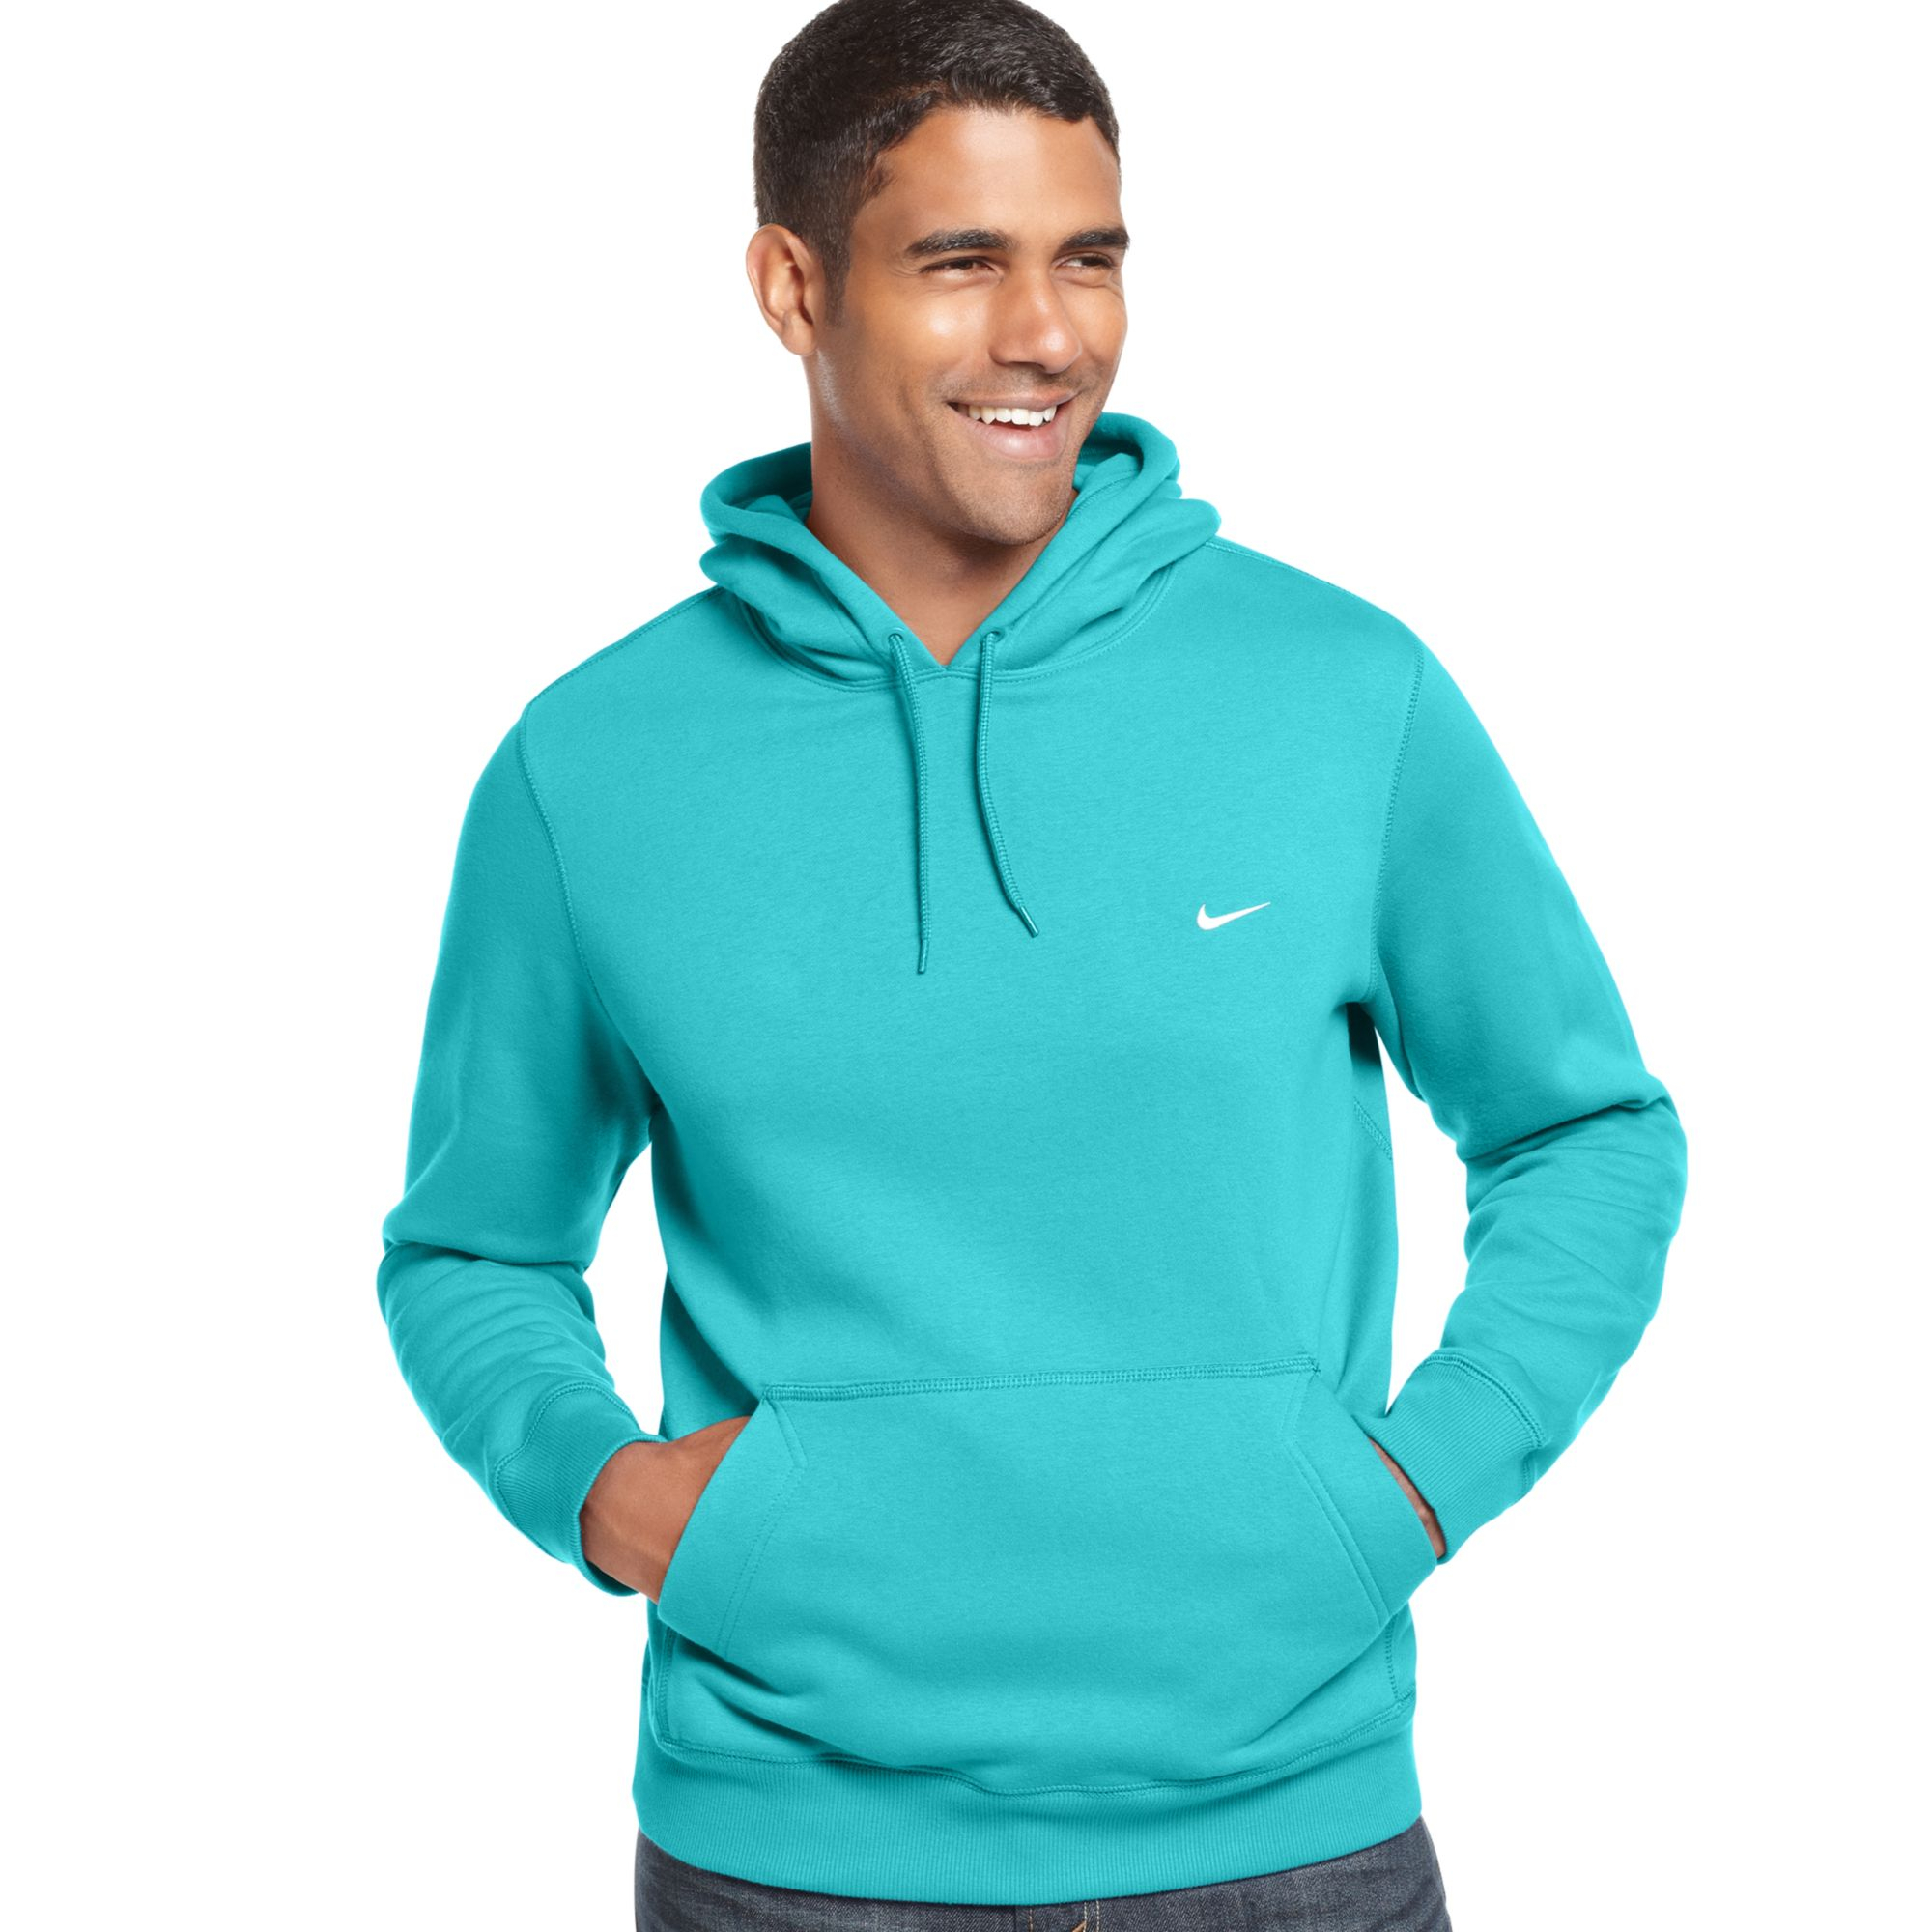 nike classic pullover fleece hoodie in blue for men lyst. Black Bedroom Furniture Sets. Home Design Ideas